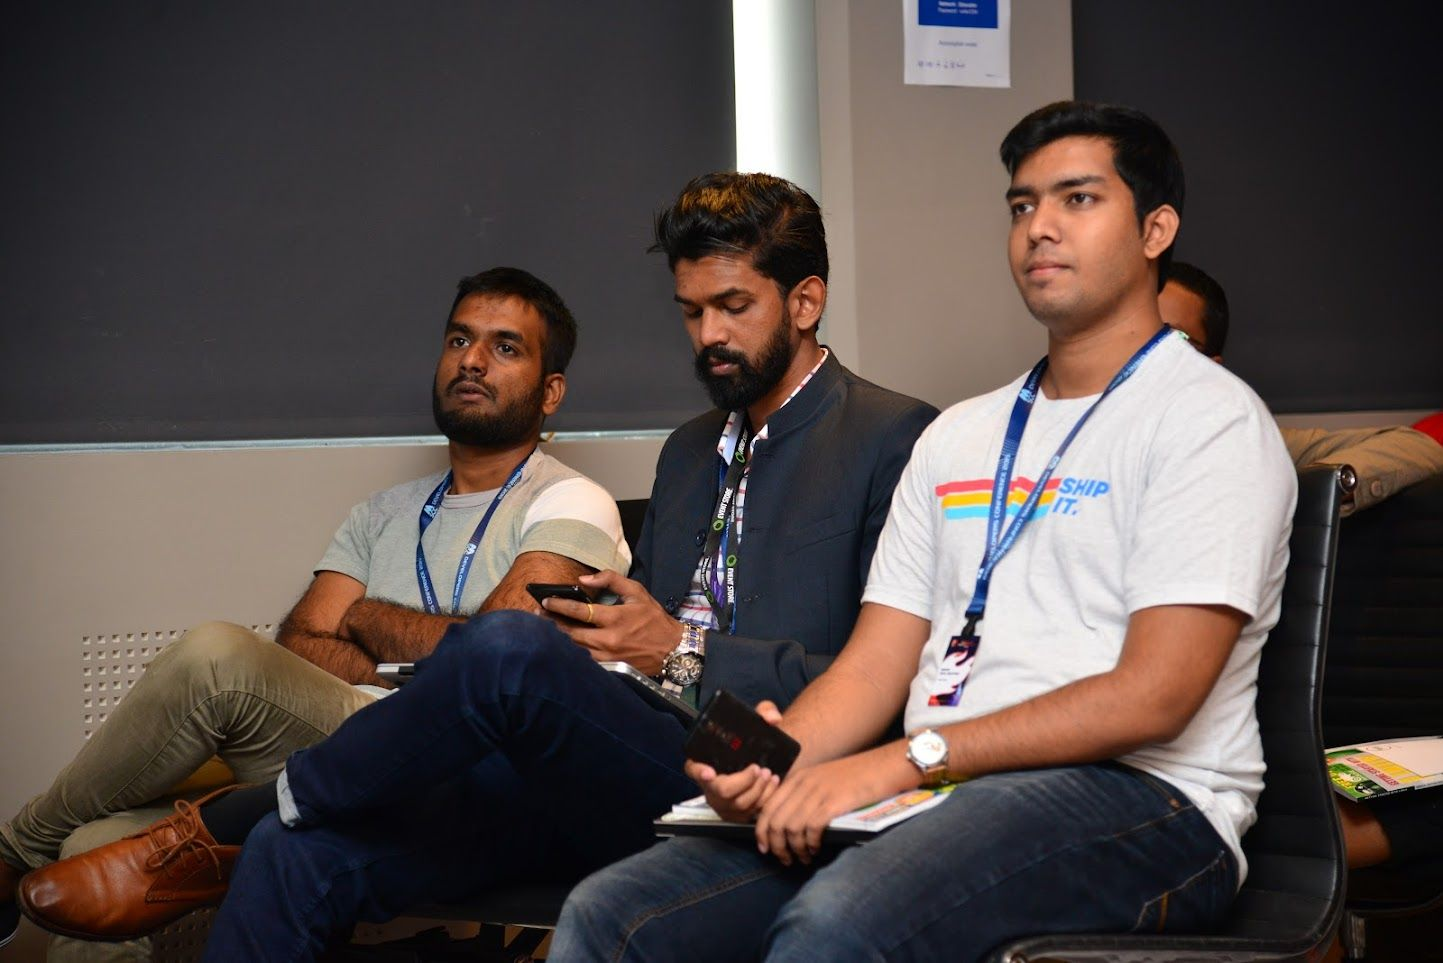 Chittesh daydreaming, Nirvan not paying attention and Neil pretending to follow the presentation :D